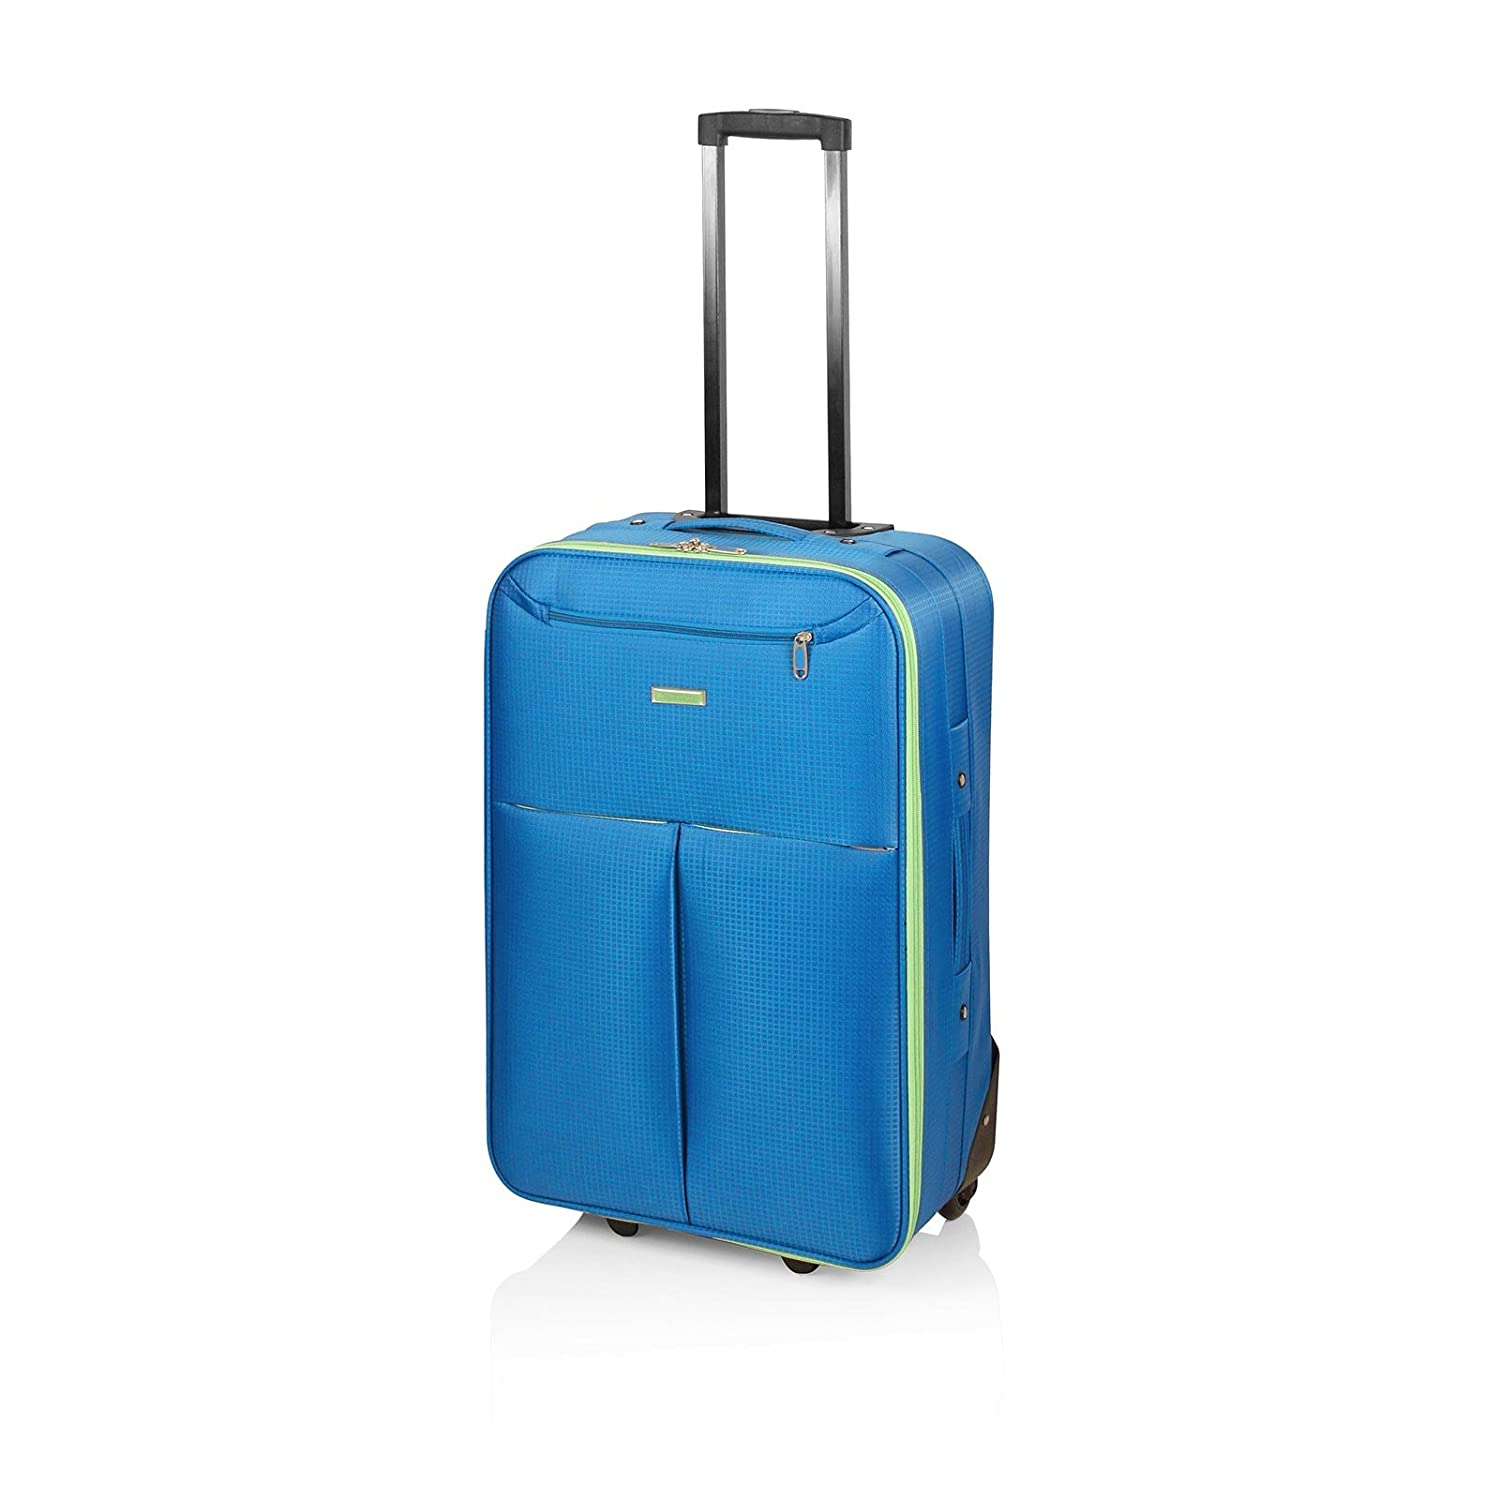 John Travel 701100 2019 Maleta, 60 cm, 30 litros: Amazon.es ...